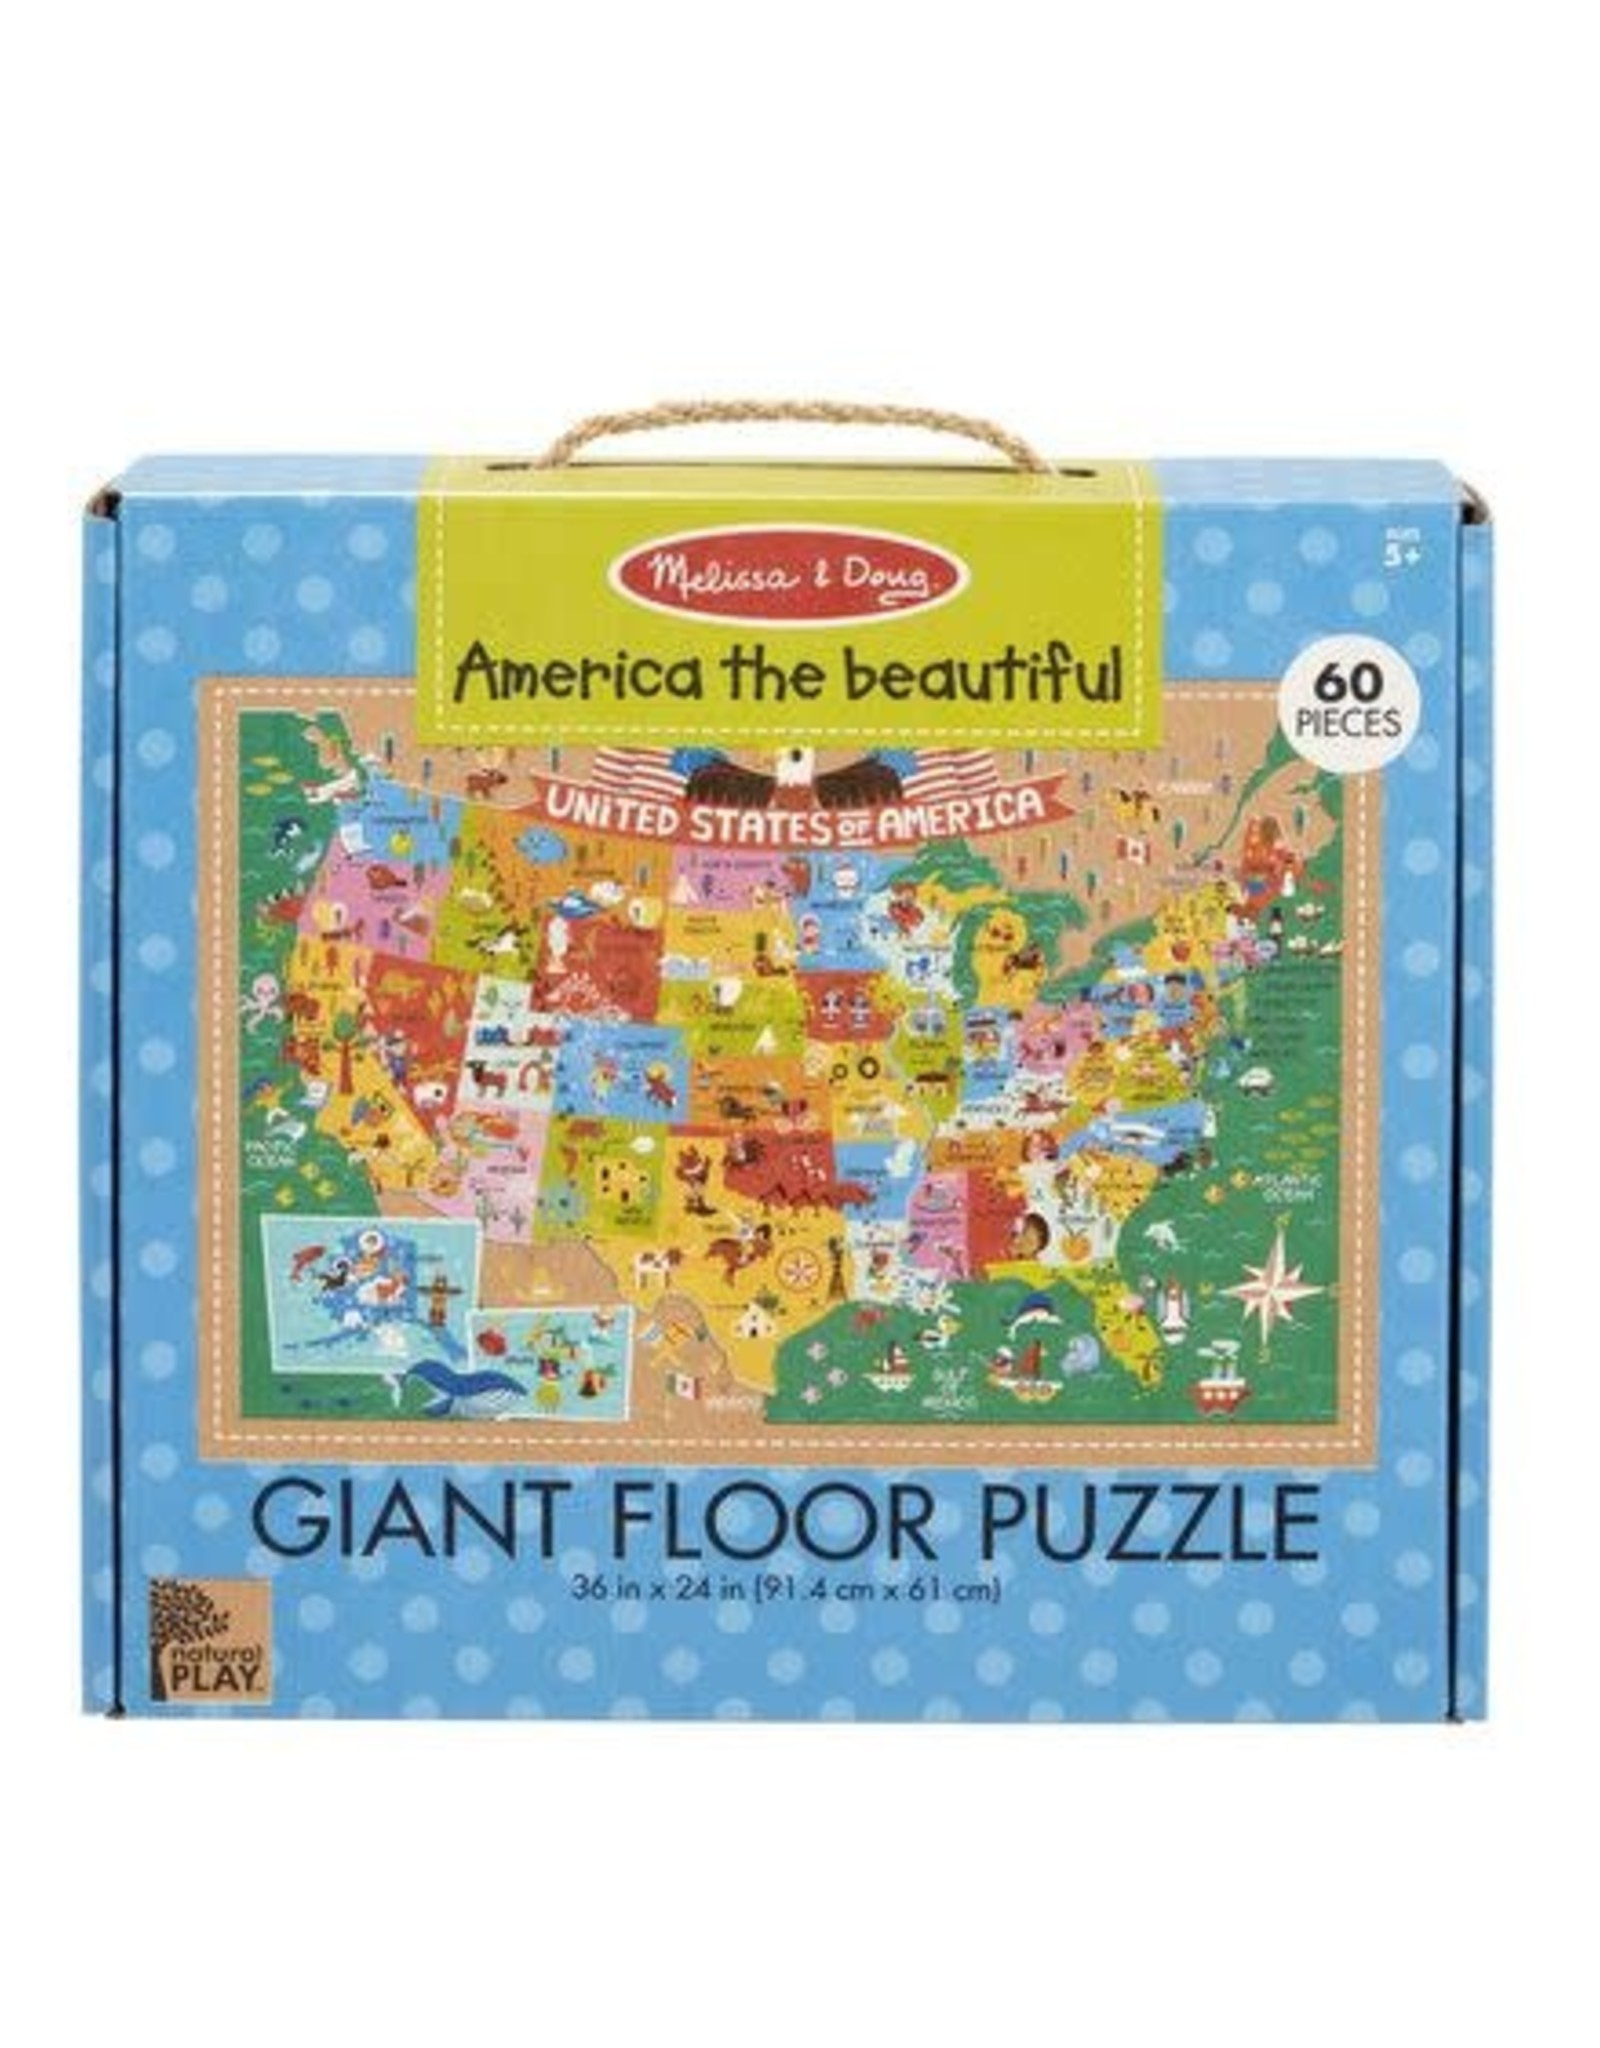 NP Giant Floor Puzzle - America the Beautiful